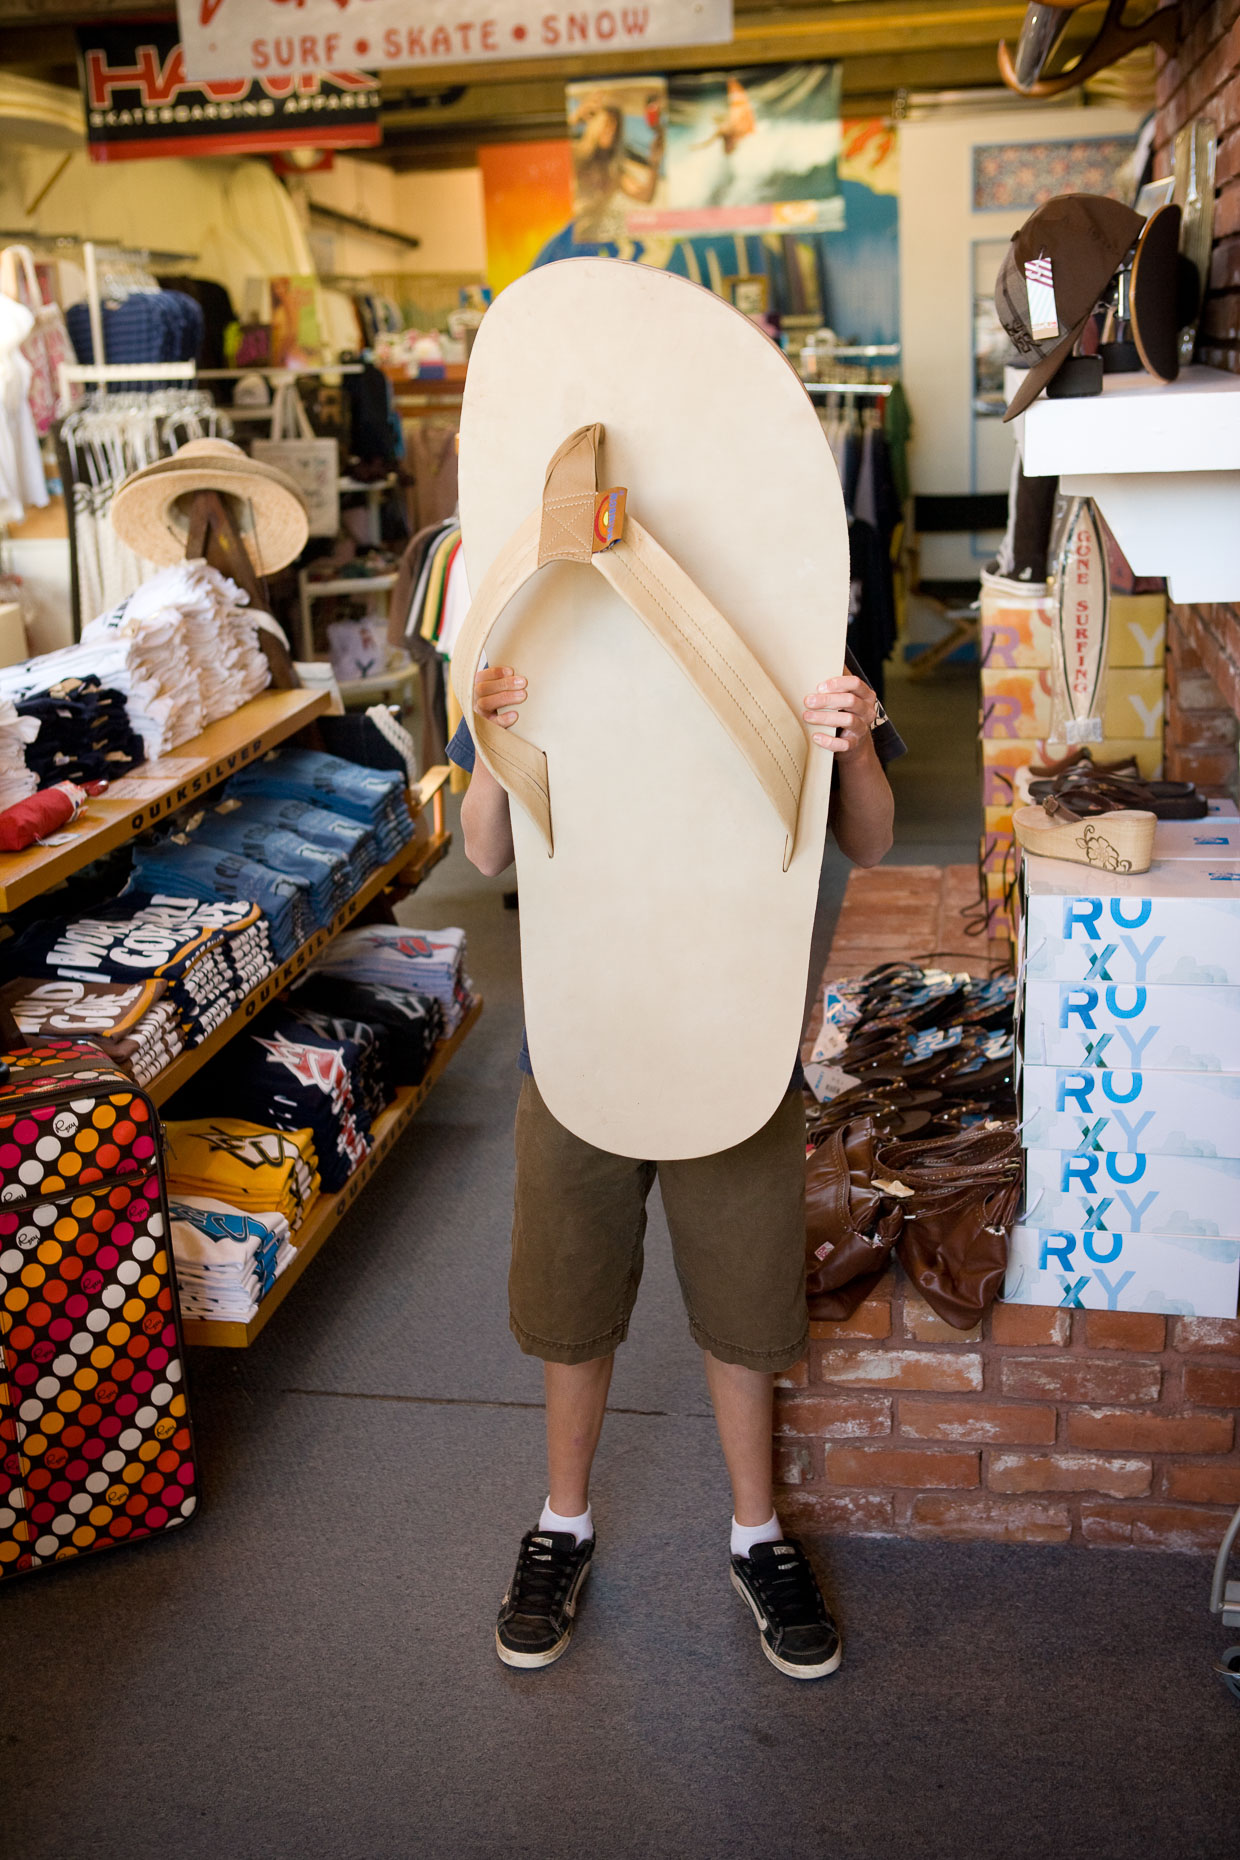 Boy holds oversized large sandal over his face in retail store in Seal Beach, California by David Zaitz